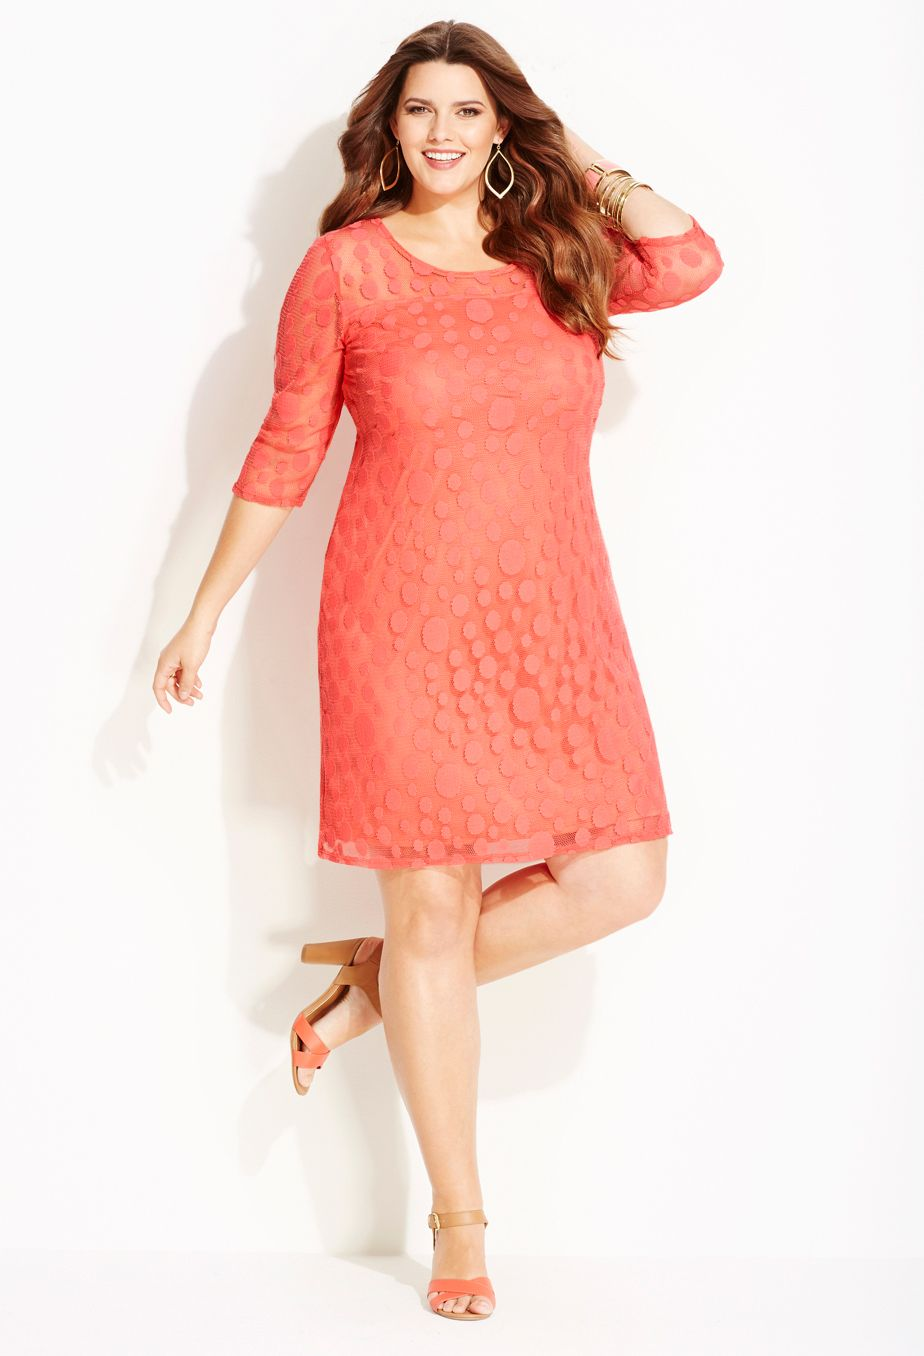 17 Best images about Fashion plussize inspiration on Pinterest ...